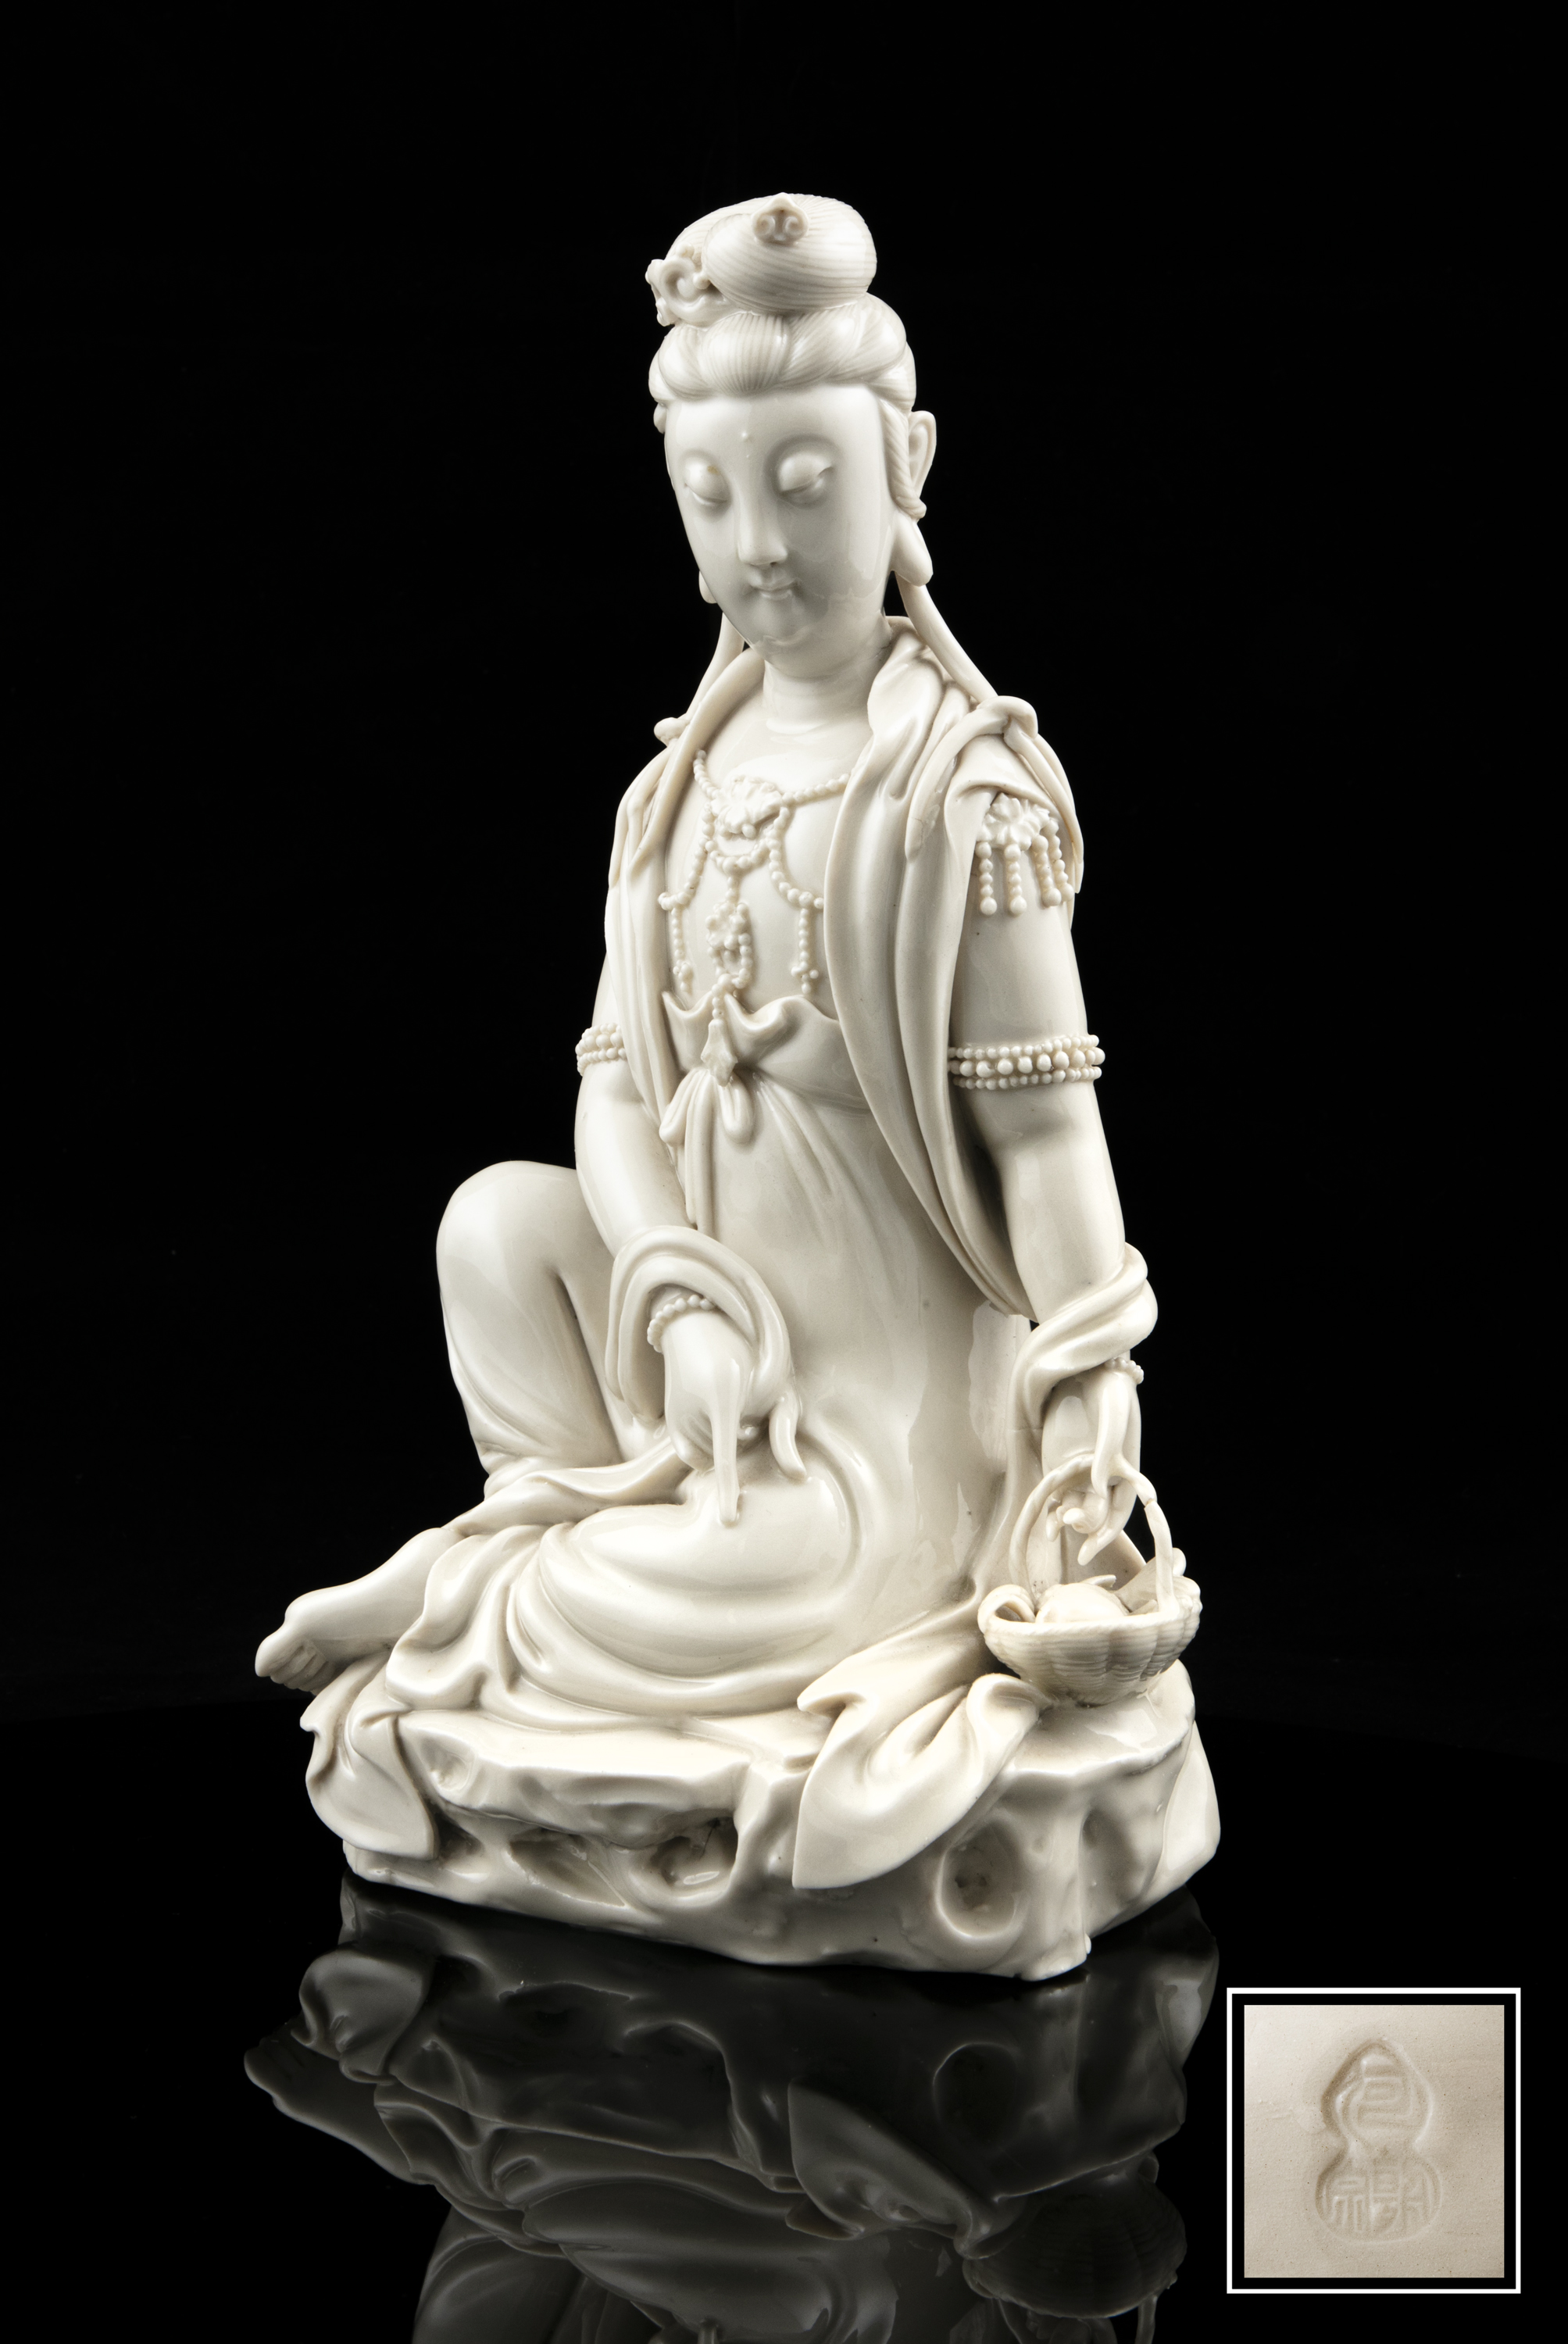 A LARGE DEHUA FIGURE OF A SEATED GUANYIN IMPRESSED WITH A HE CHAOZONG 何朝宗 CALABASH SHAPED SEAL